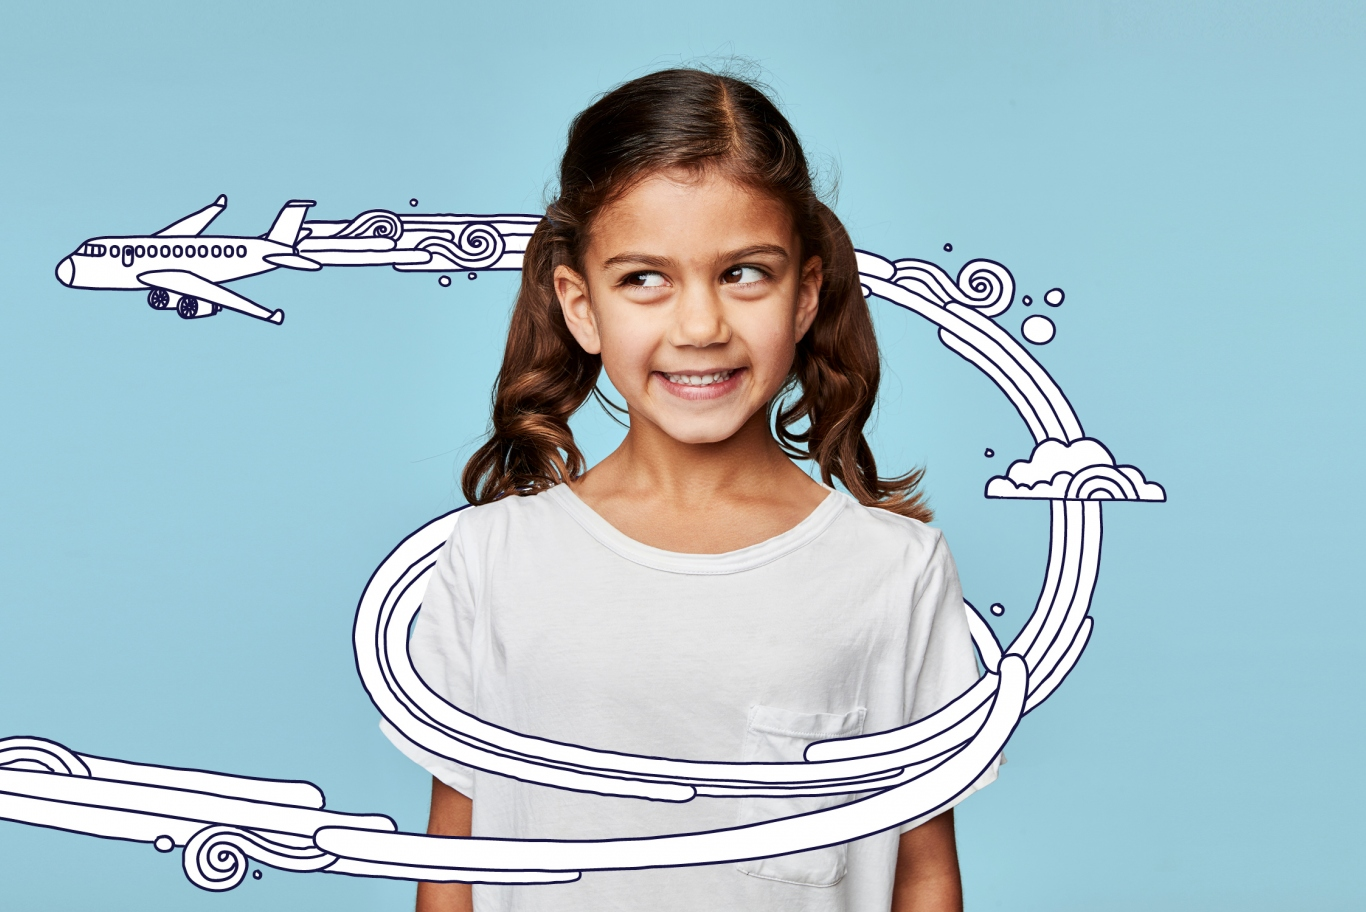 Girl standing looking to her right as if at cartoon aeroplane drawn next to her head.